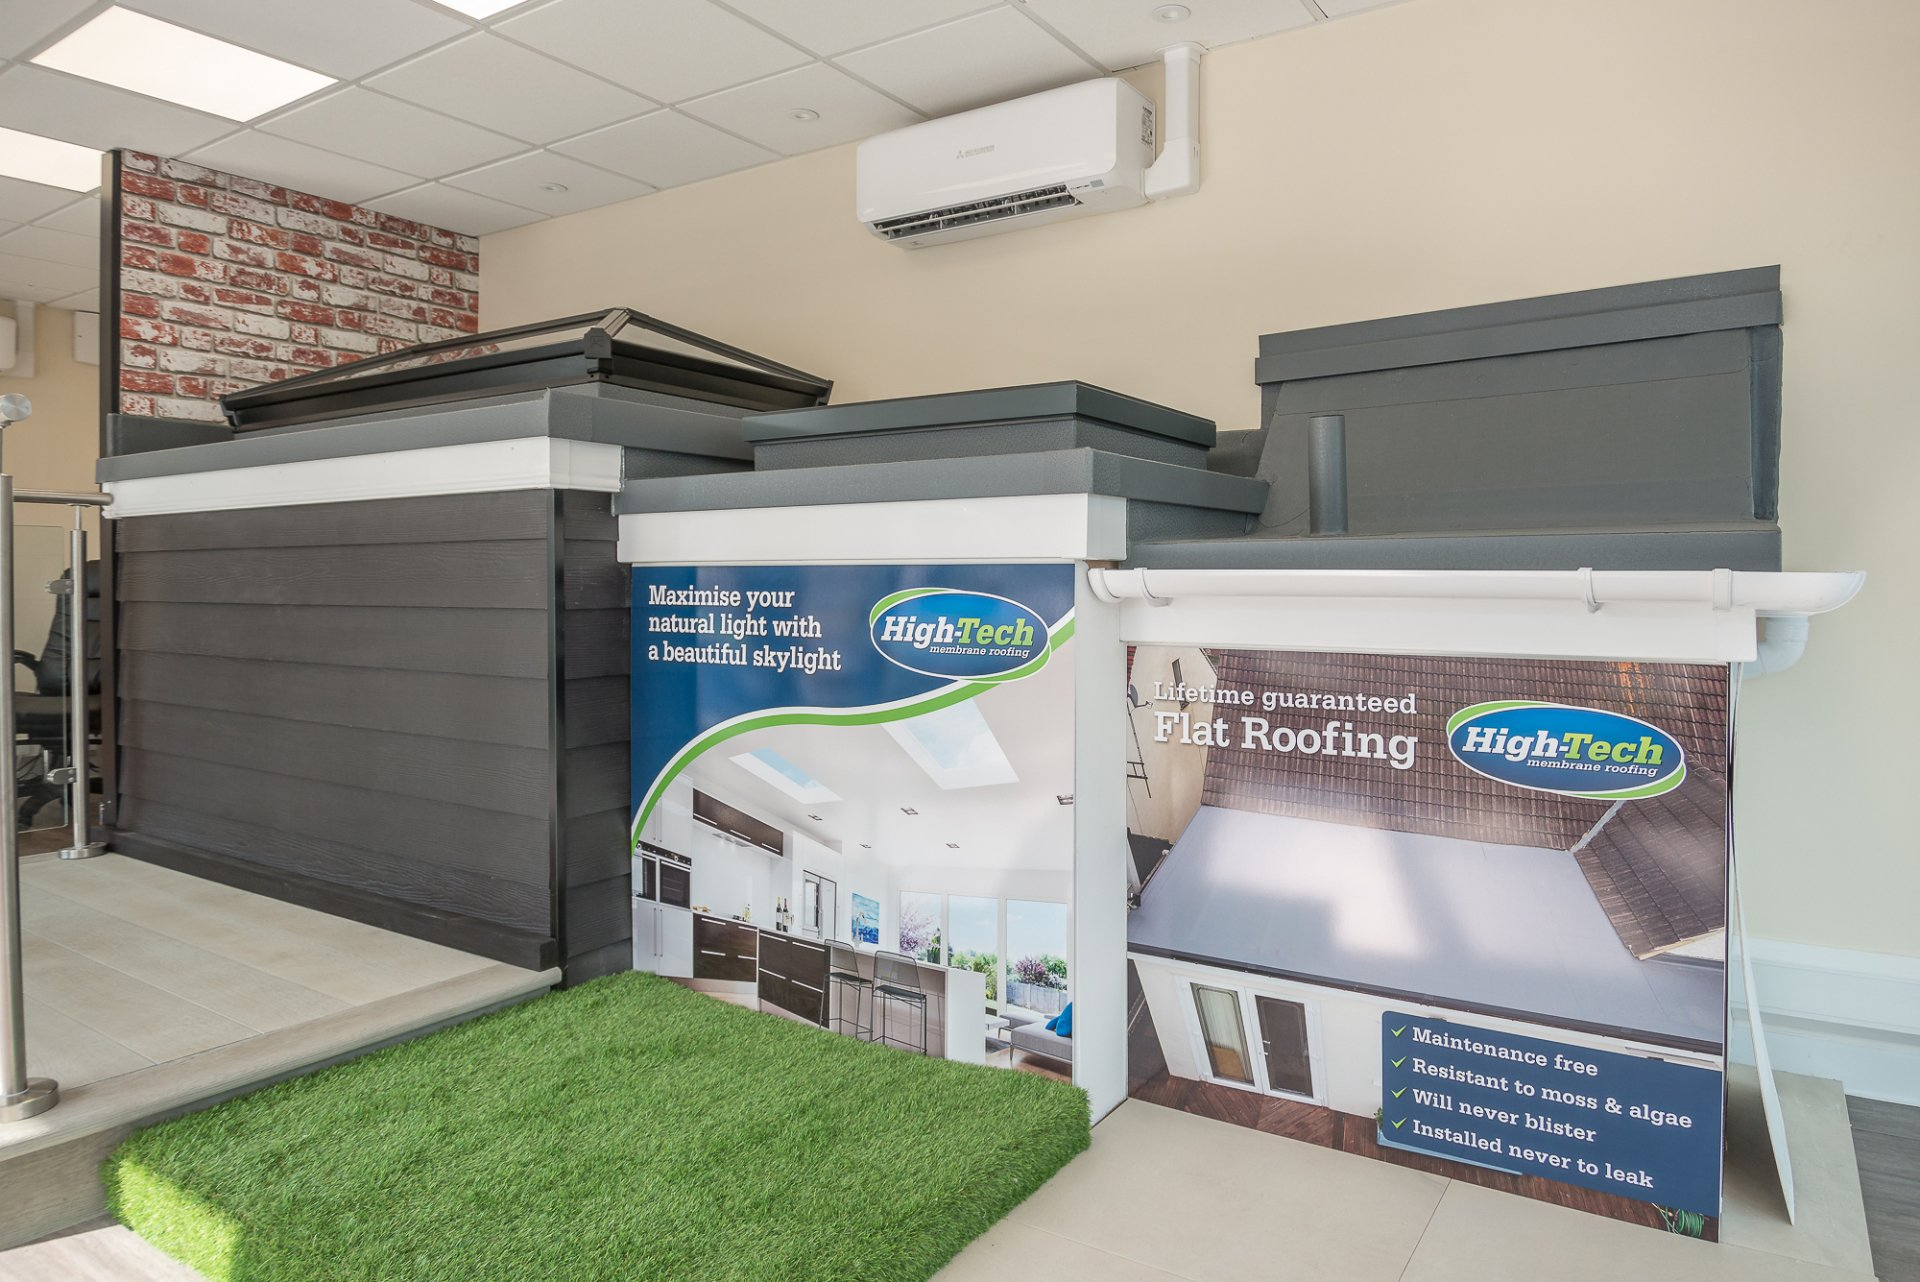 High Tech Flat Roofing showroom in Leigh on Sea, Southend, Essex